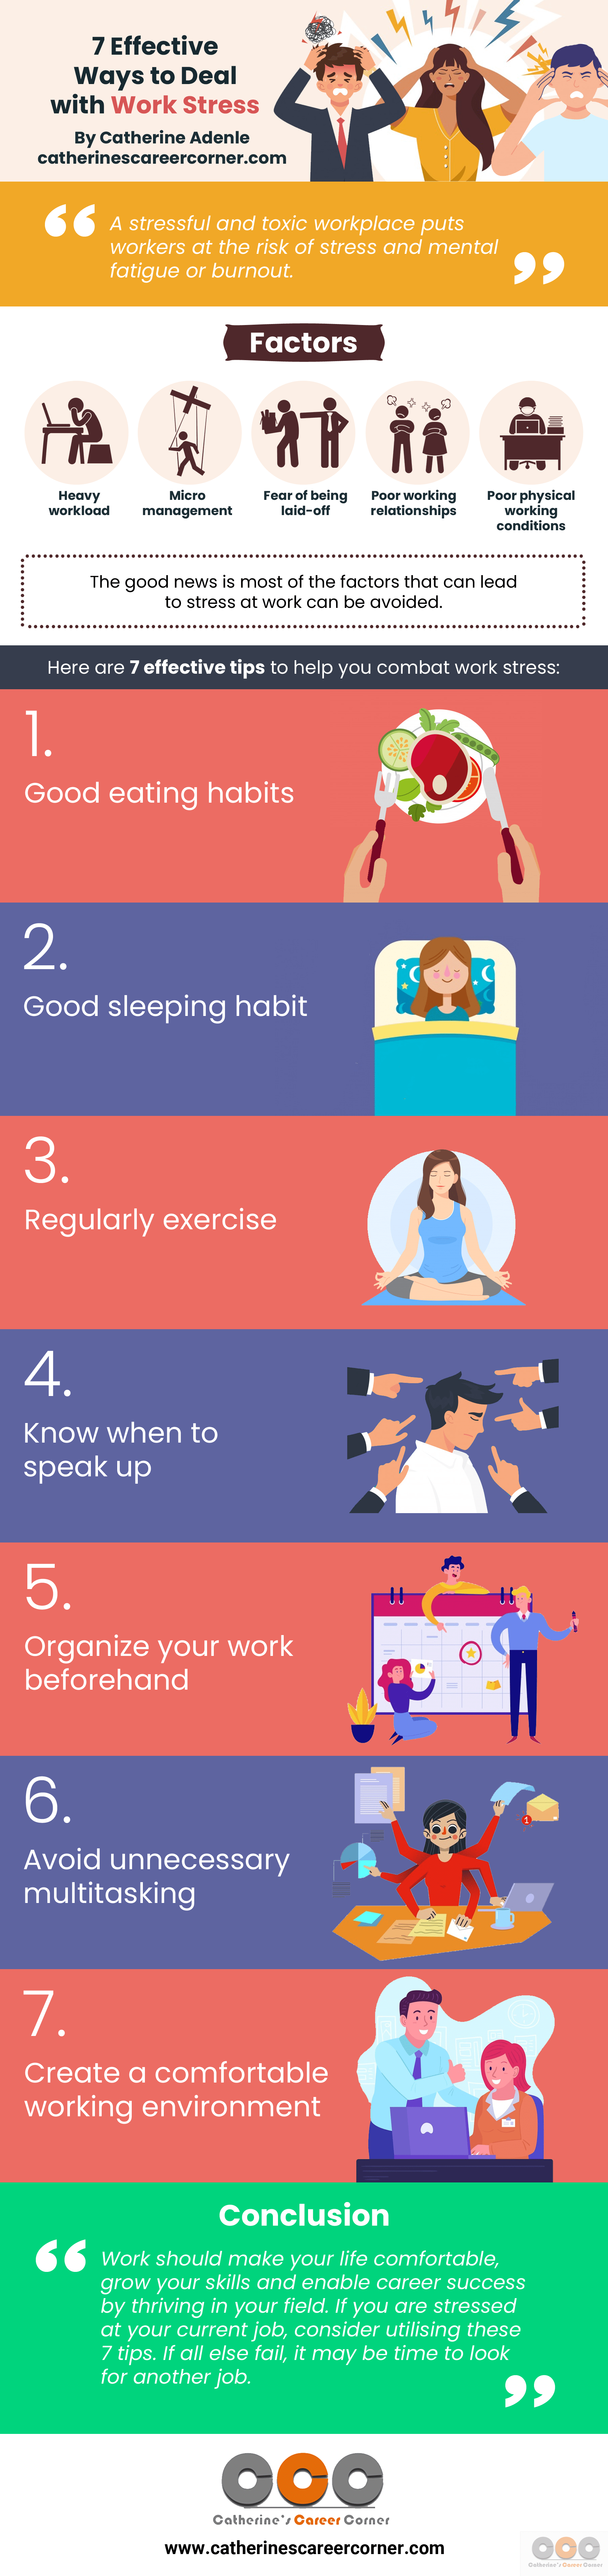 7 Effective Ways to Deal With Work Stress